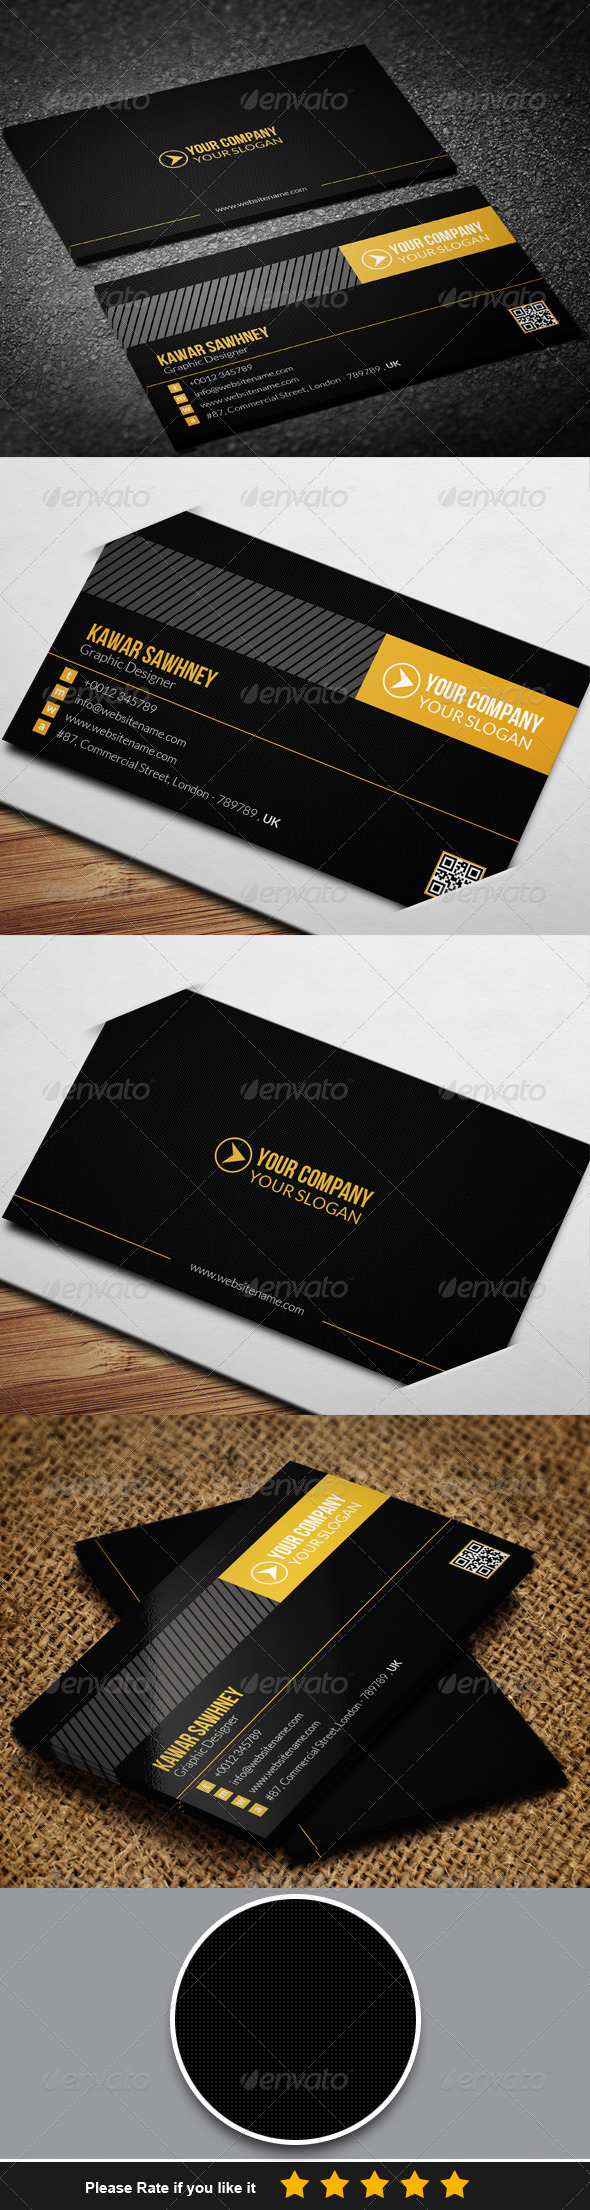 GraphicRiver Corporate Business Card 4 7762211